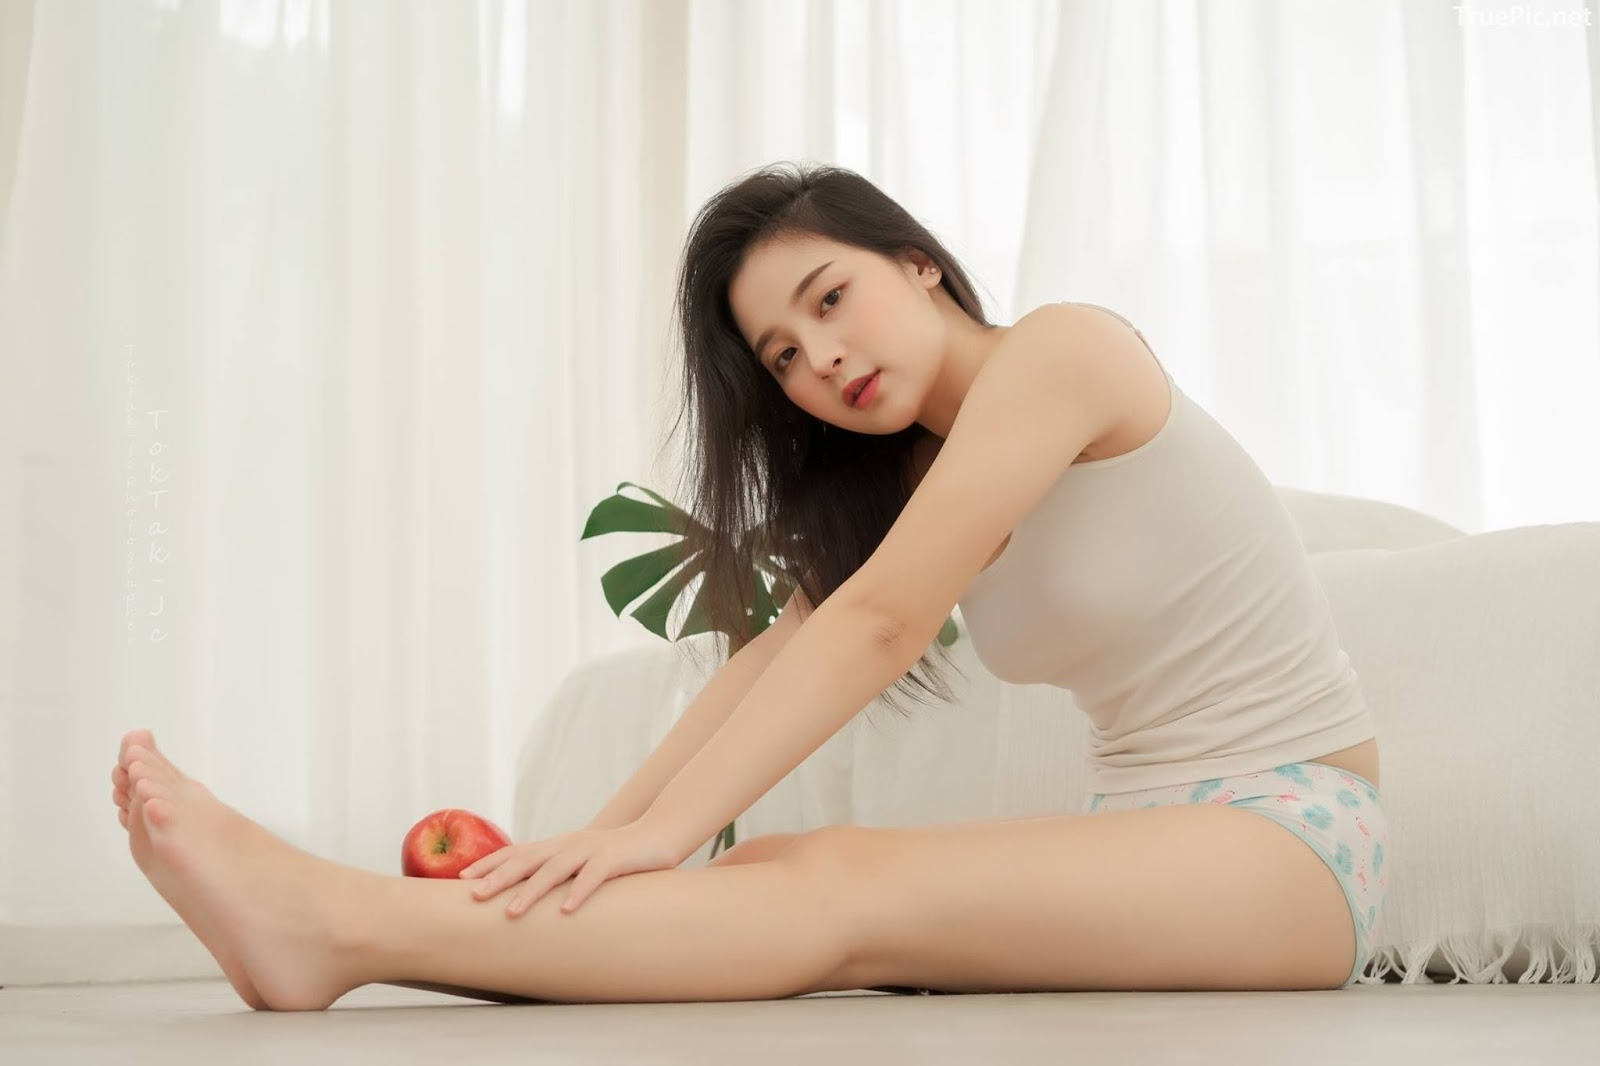 Thailand model Irine Palanichaya - The beautiful girl and Red poison apple - Picture 8